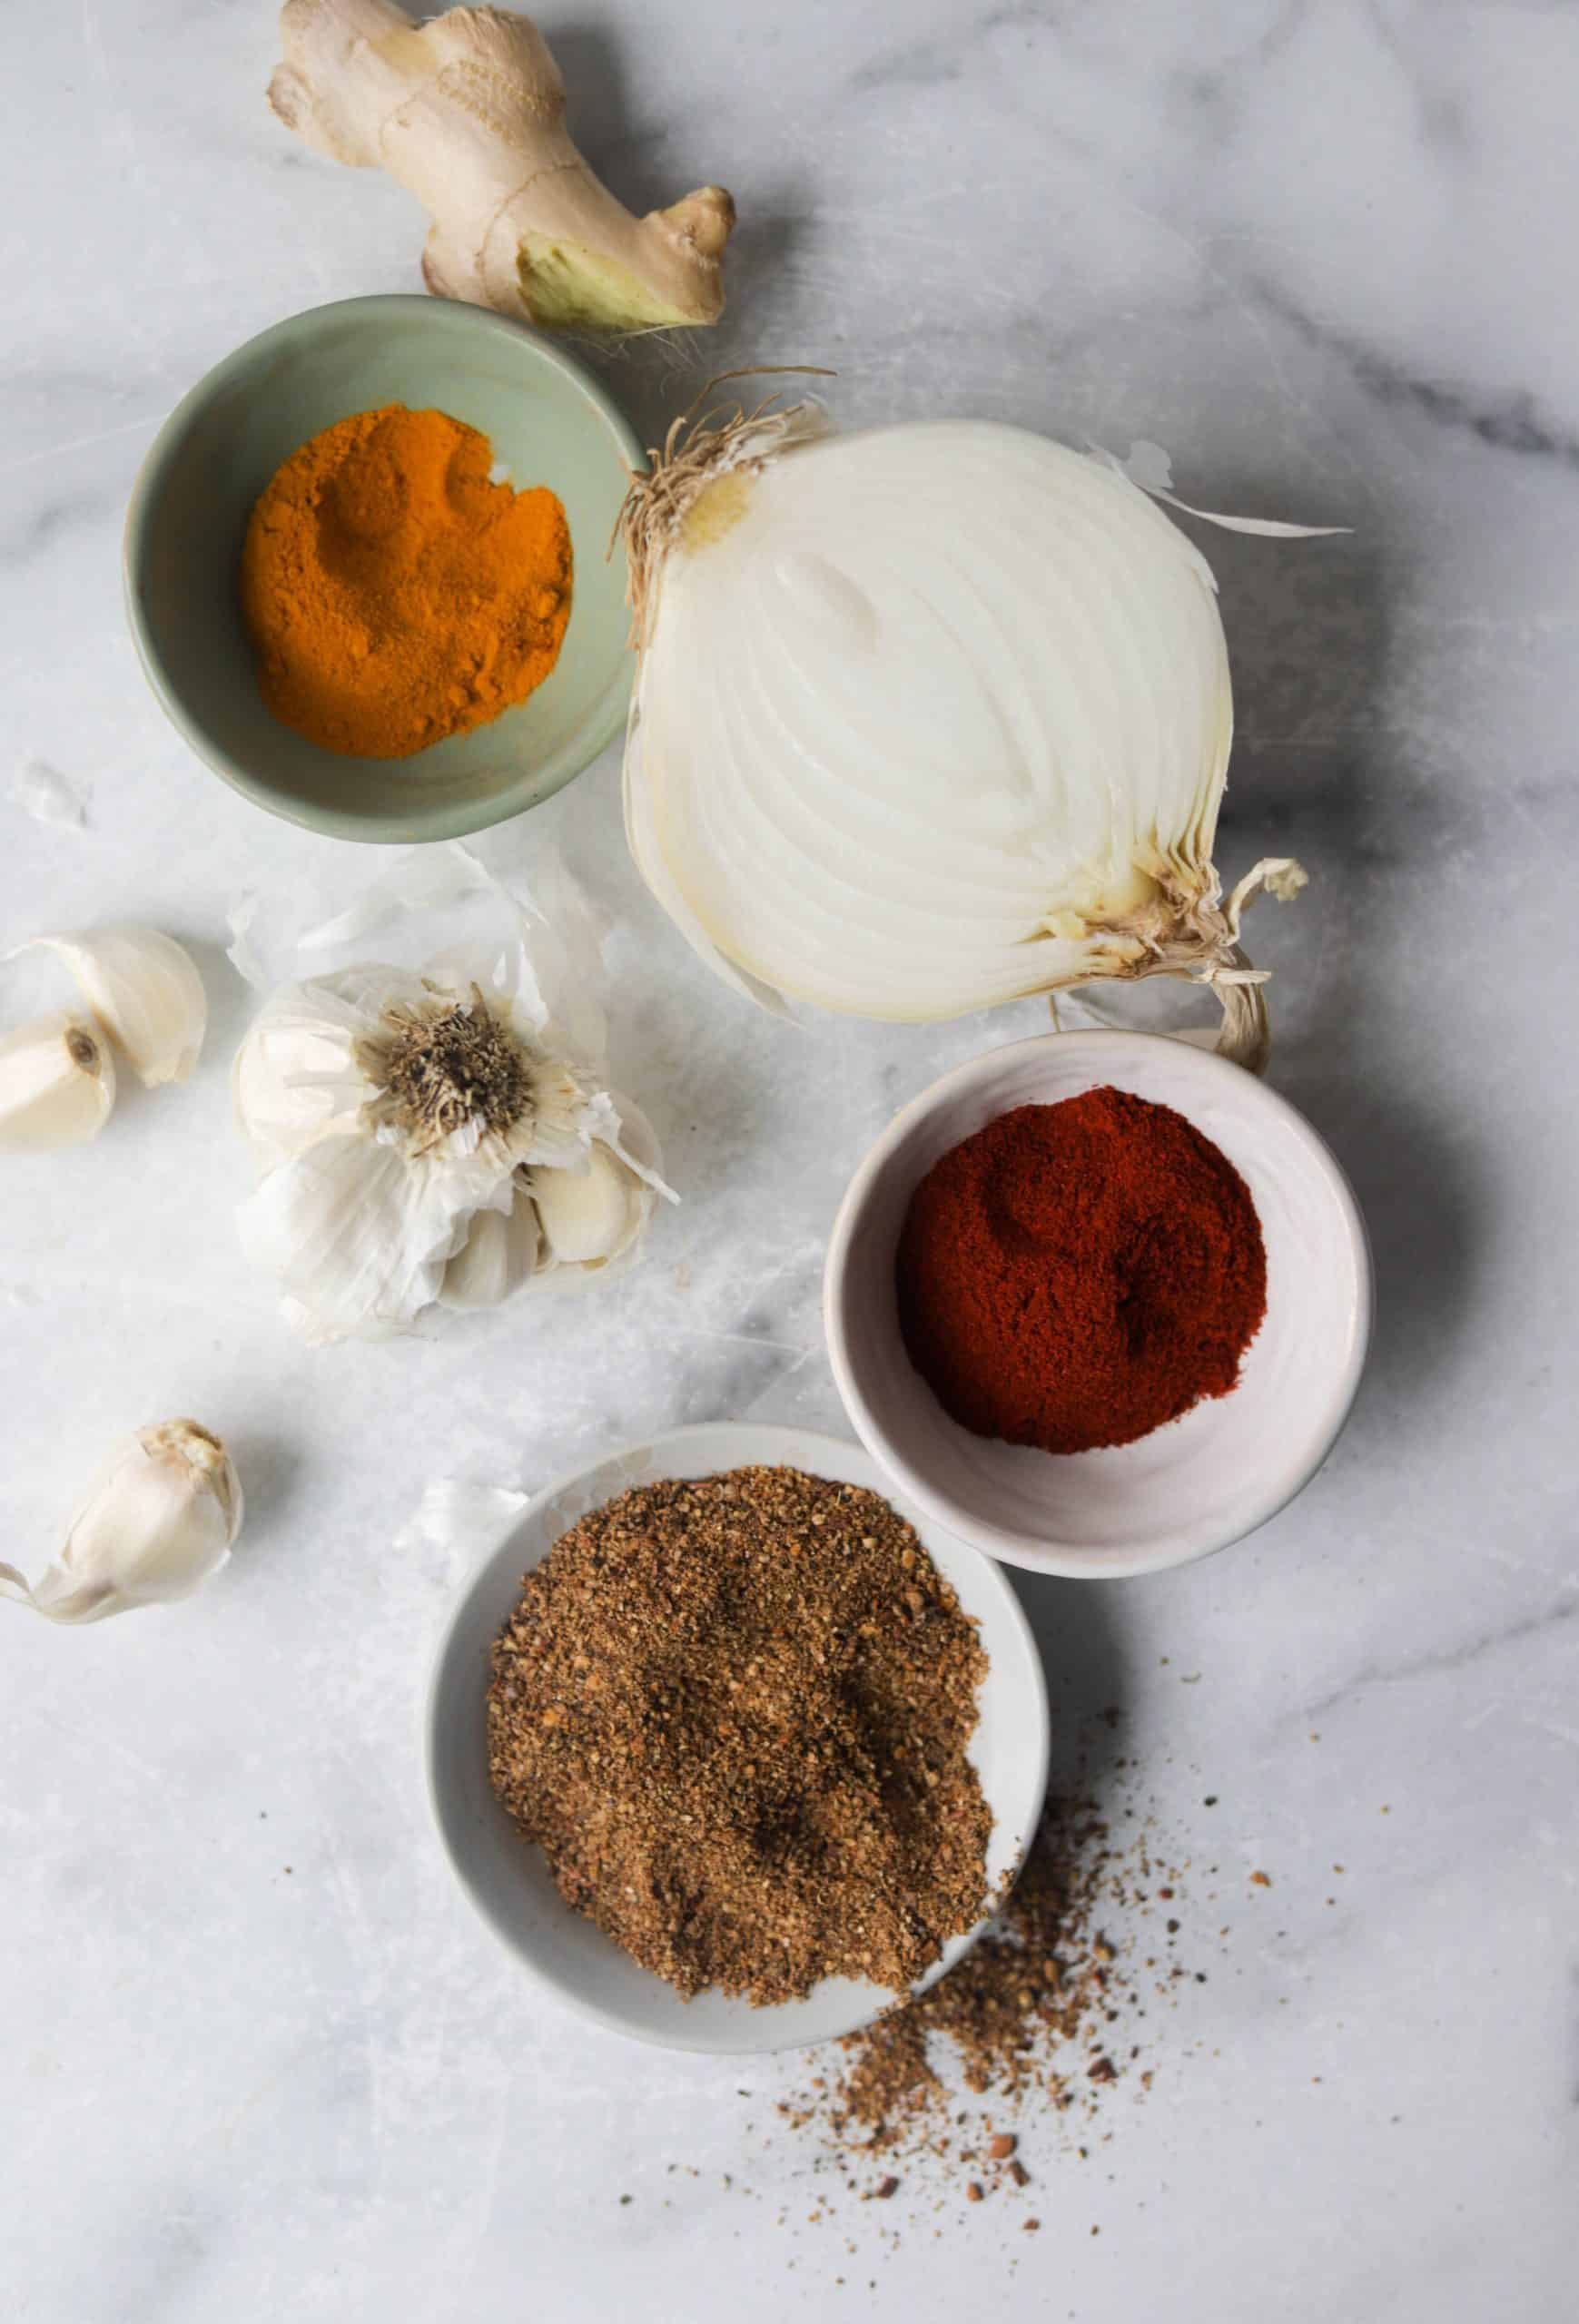 A white marble backdrop with onion, ginger, garlic and spices in bowls.